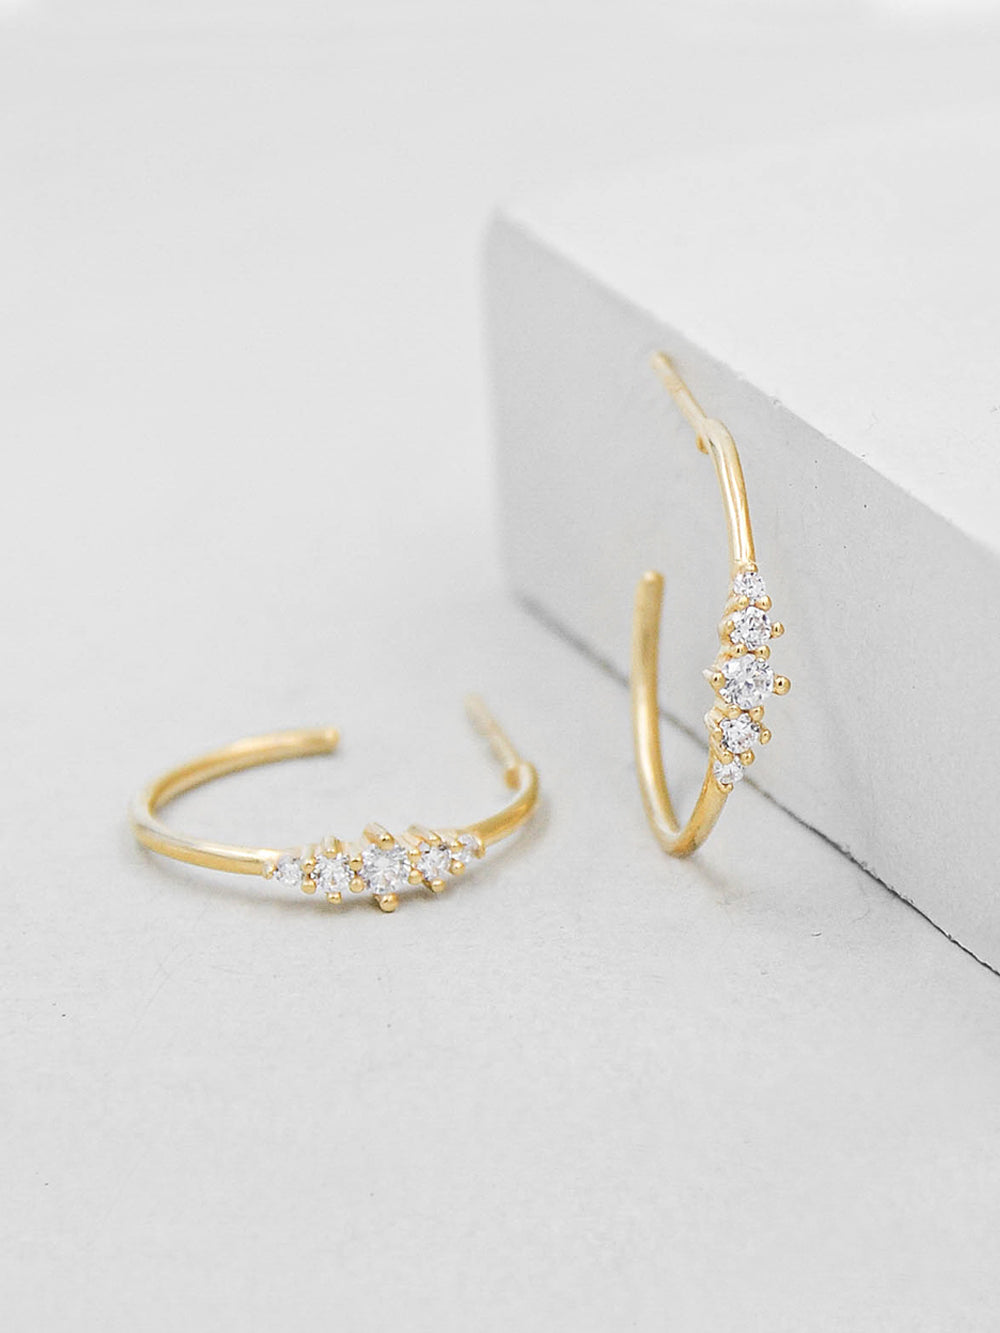 Dainty Hoops with CZ Crown design Gold Plated Dangling Earrings by The Faint Hearted Jewelry